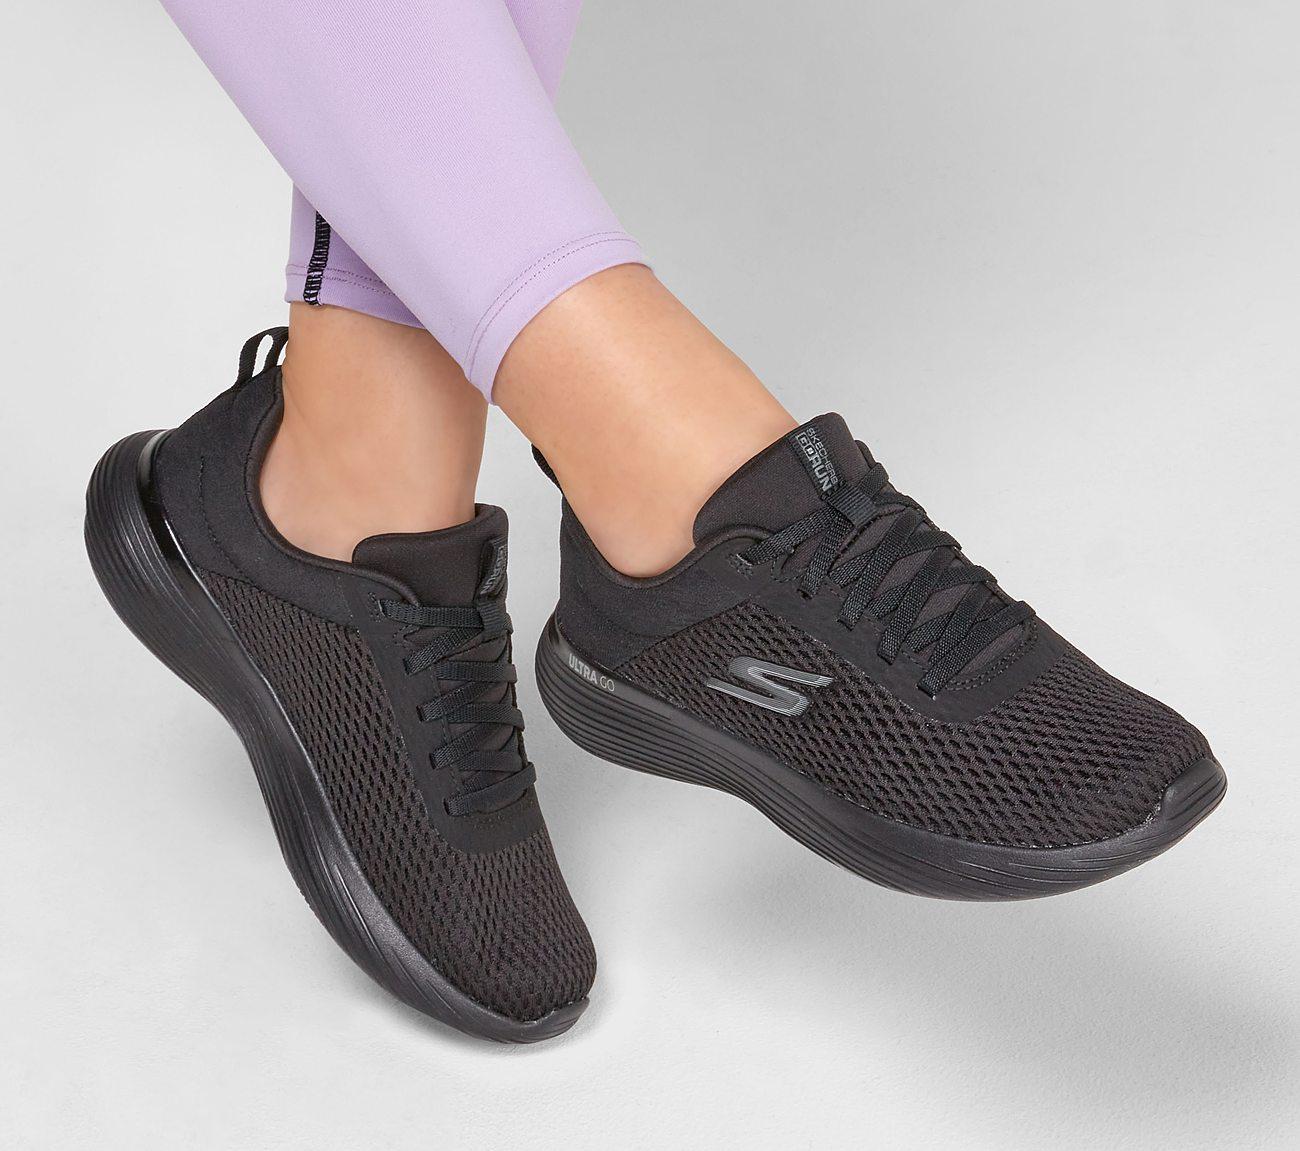 Tênis Go Run 400 V2 - Scion Feminino Skechers